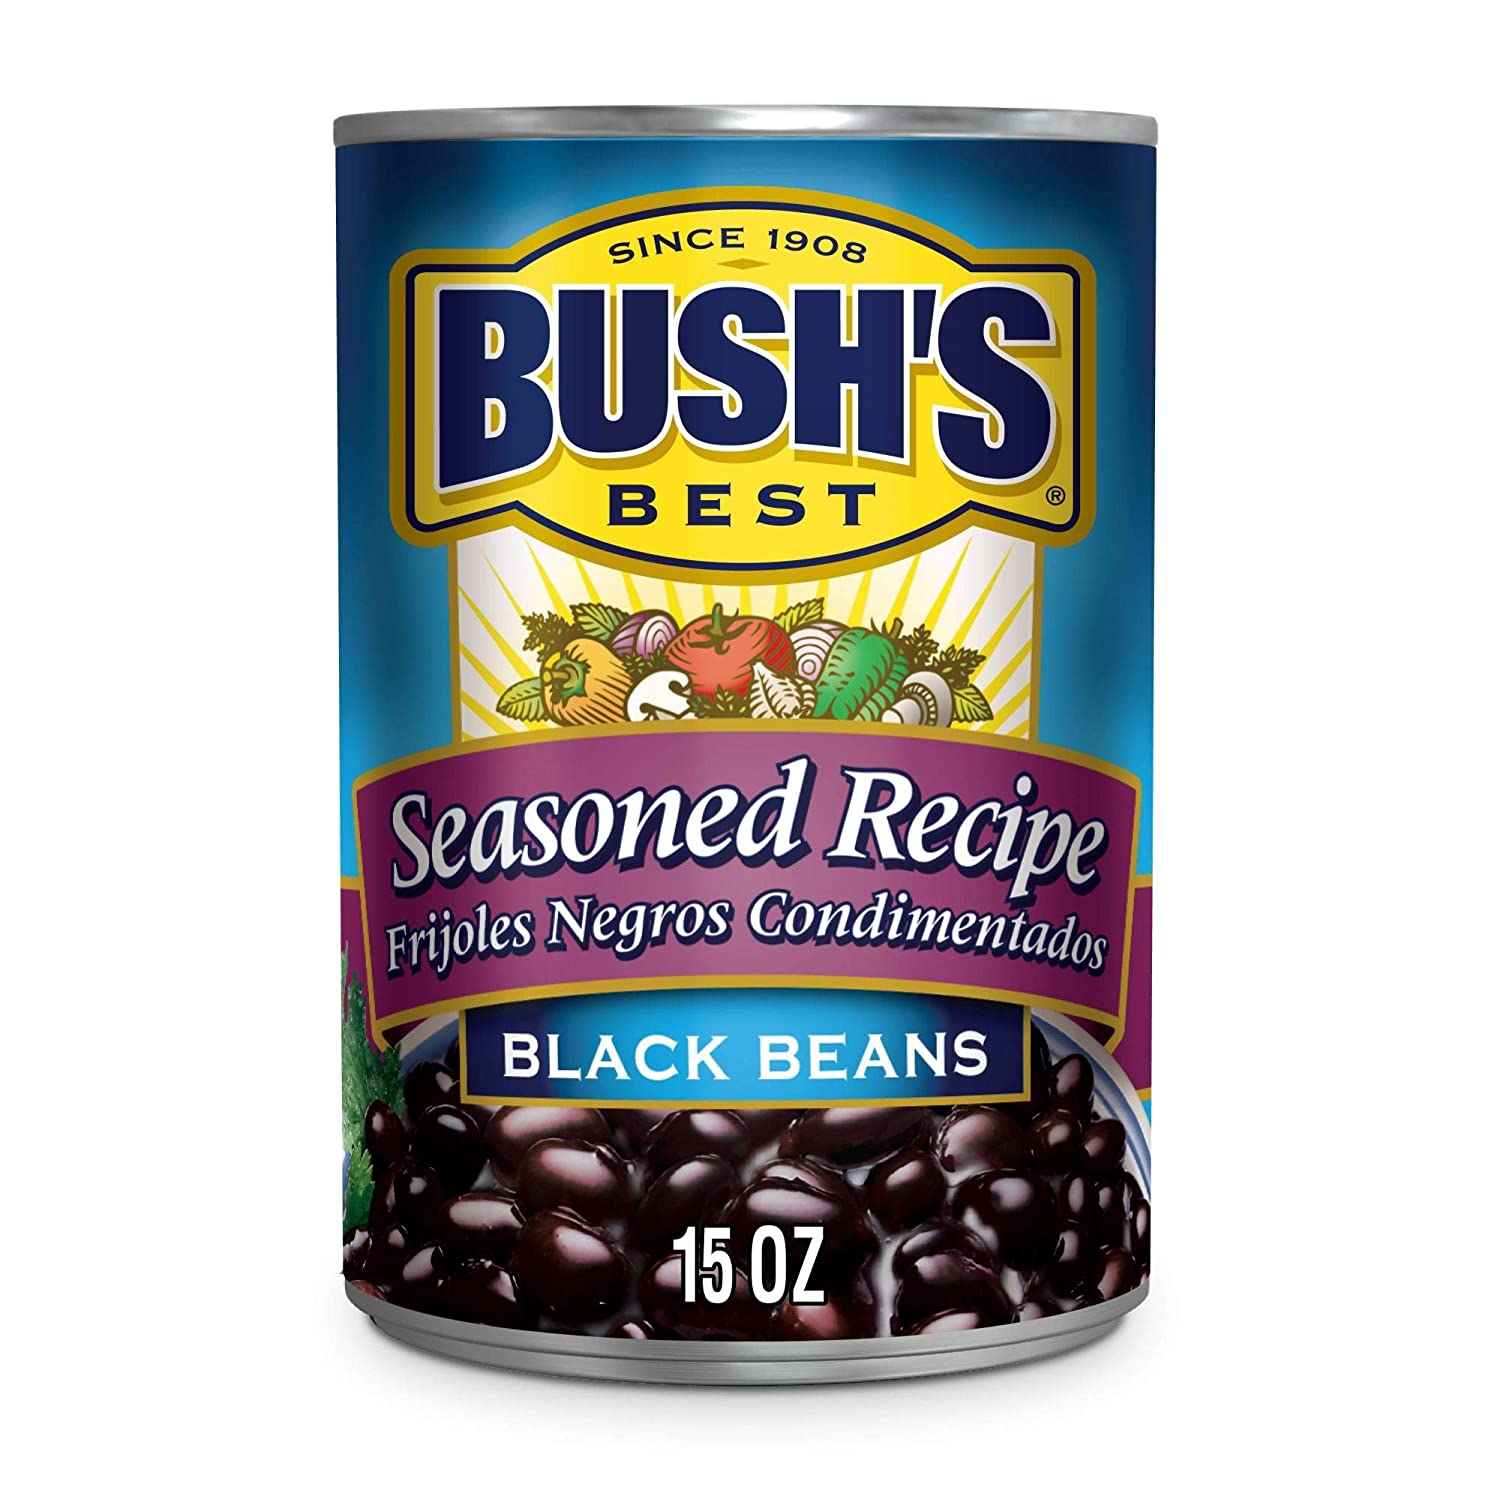 BUSH'S BEST Canned Seasoned Recipe Black Beans (Pack of 12), Source of Plant Based Protein and Fiber, Low Fat, Gluten Free, 15 oz